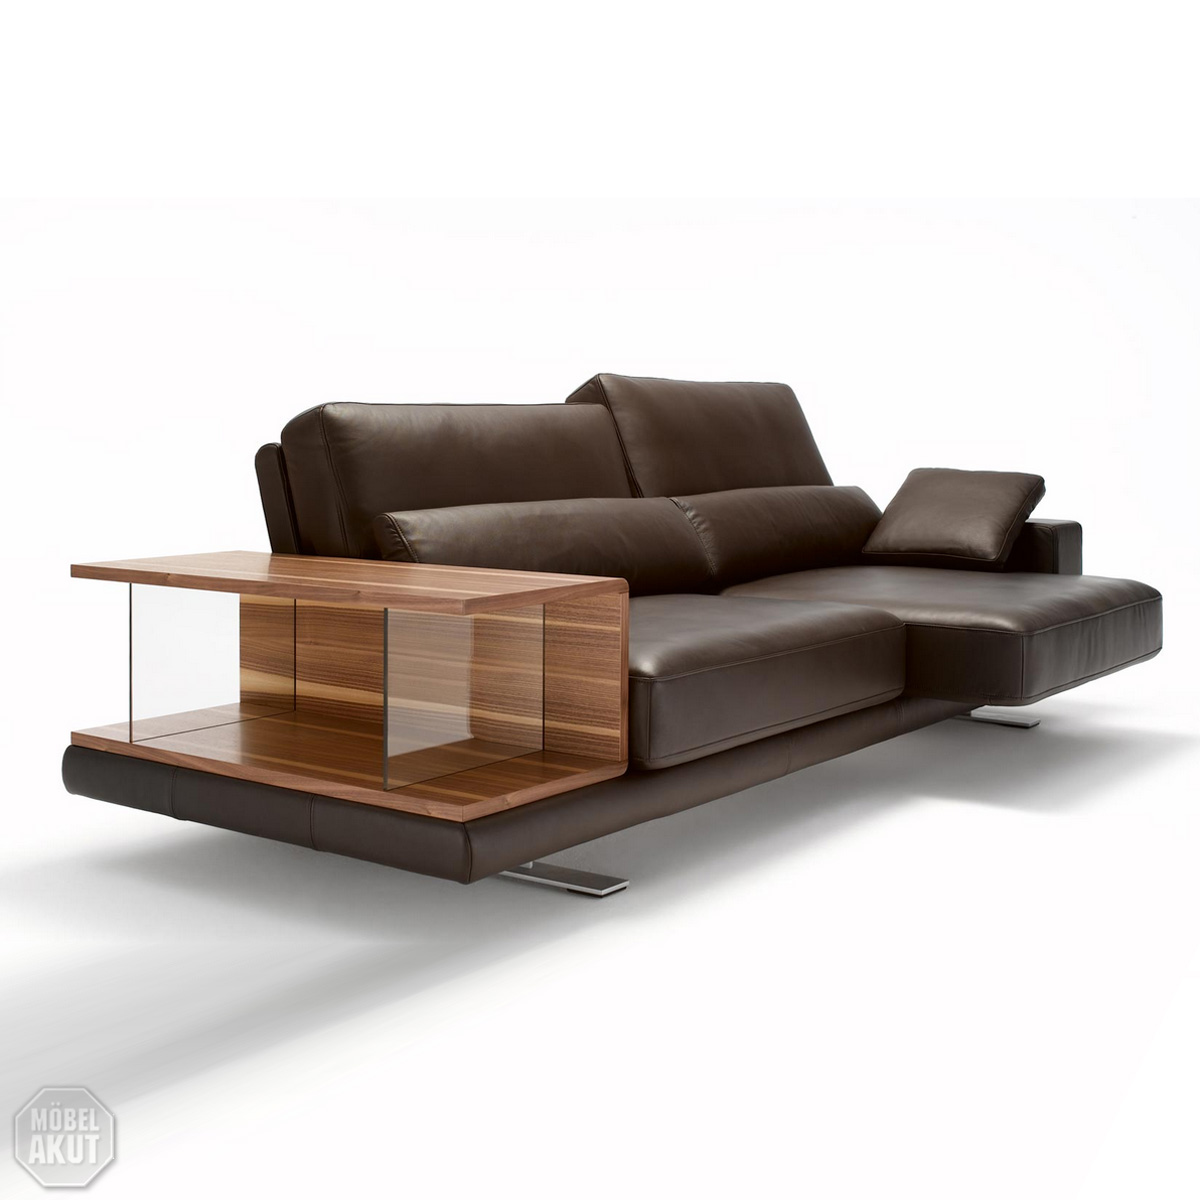 rolf benz sofa leder gebraucht carprola for. Black Bedroom Furniture Sets. Home Design Ideas